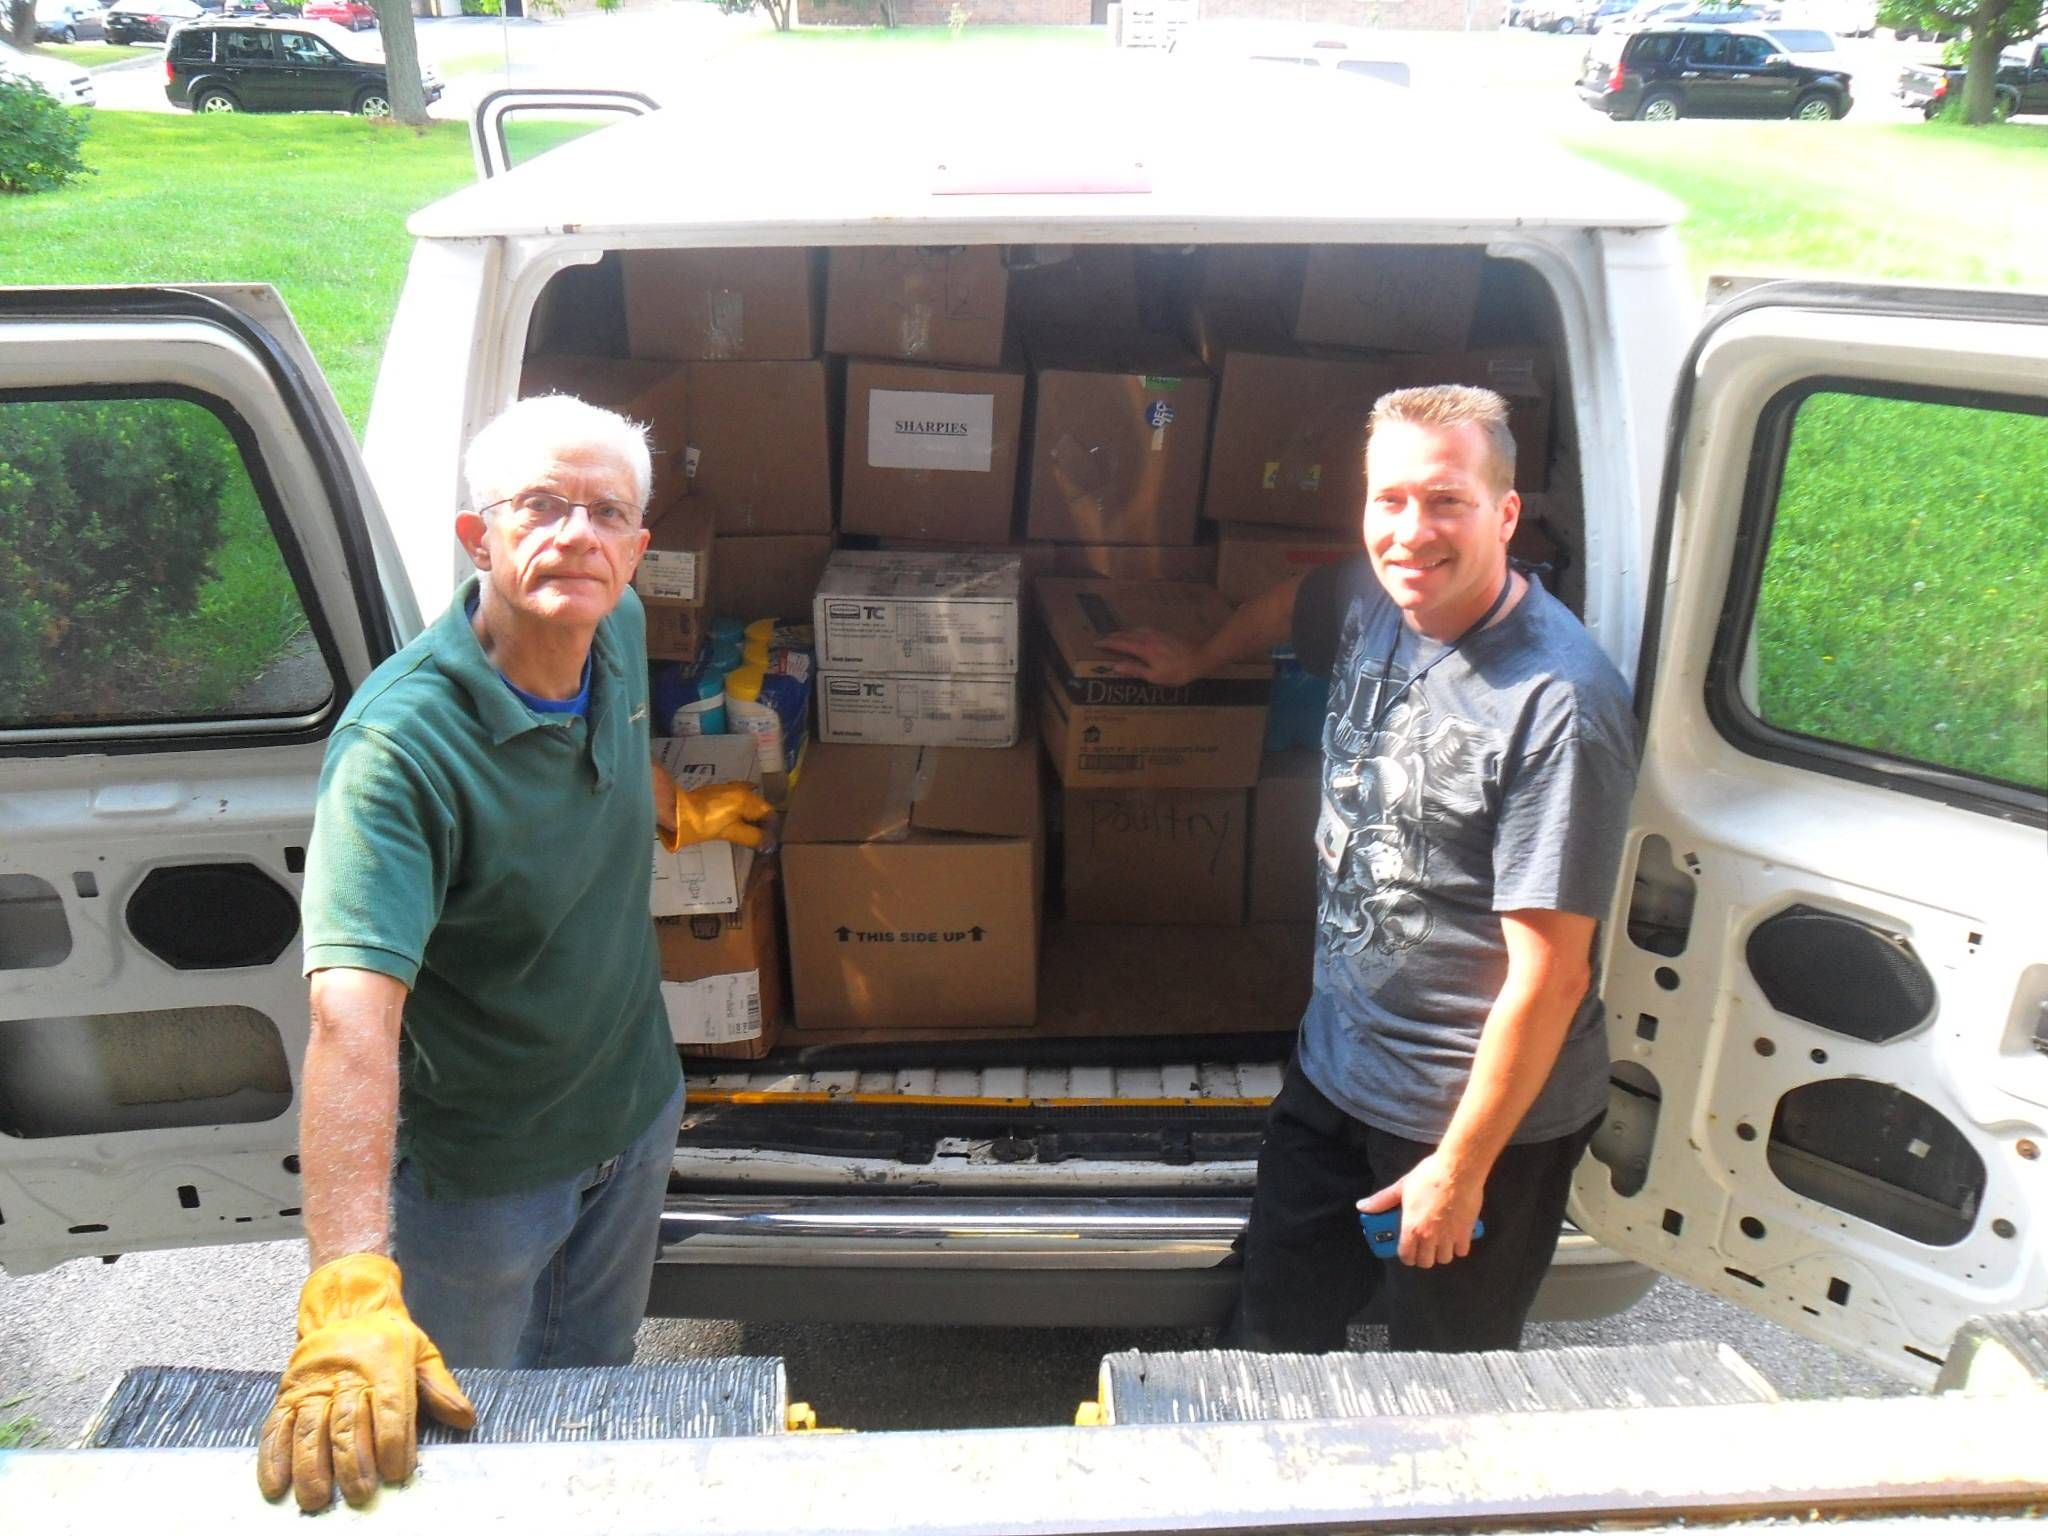 Bill Fehling, left, and Jeff Marker,right, HSP volunteers, with one of the van loads of school suppliesHumanitarian Service Project